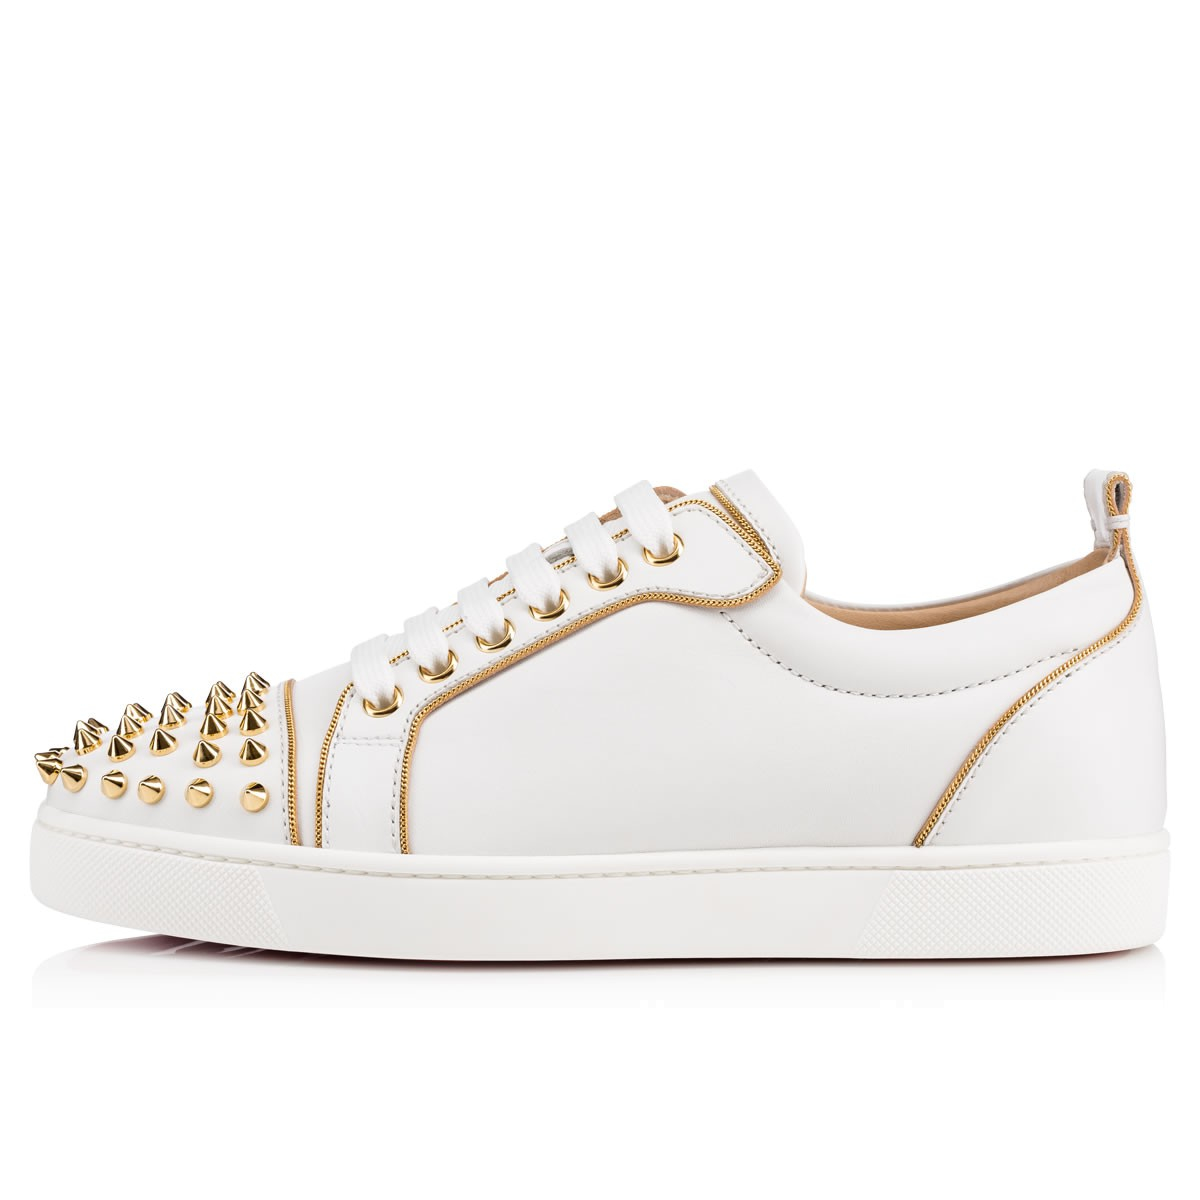 christian-louboutin-whitegold-rush-spike-flat-white-product-3-921460910-normal.jpeg